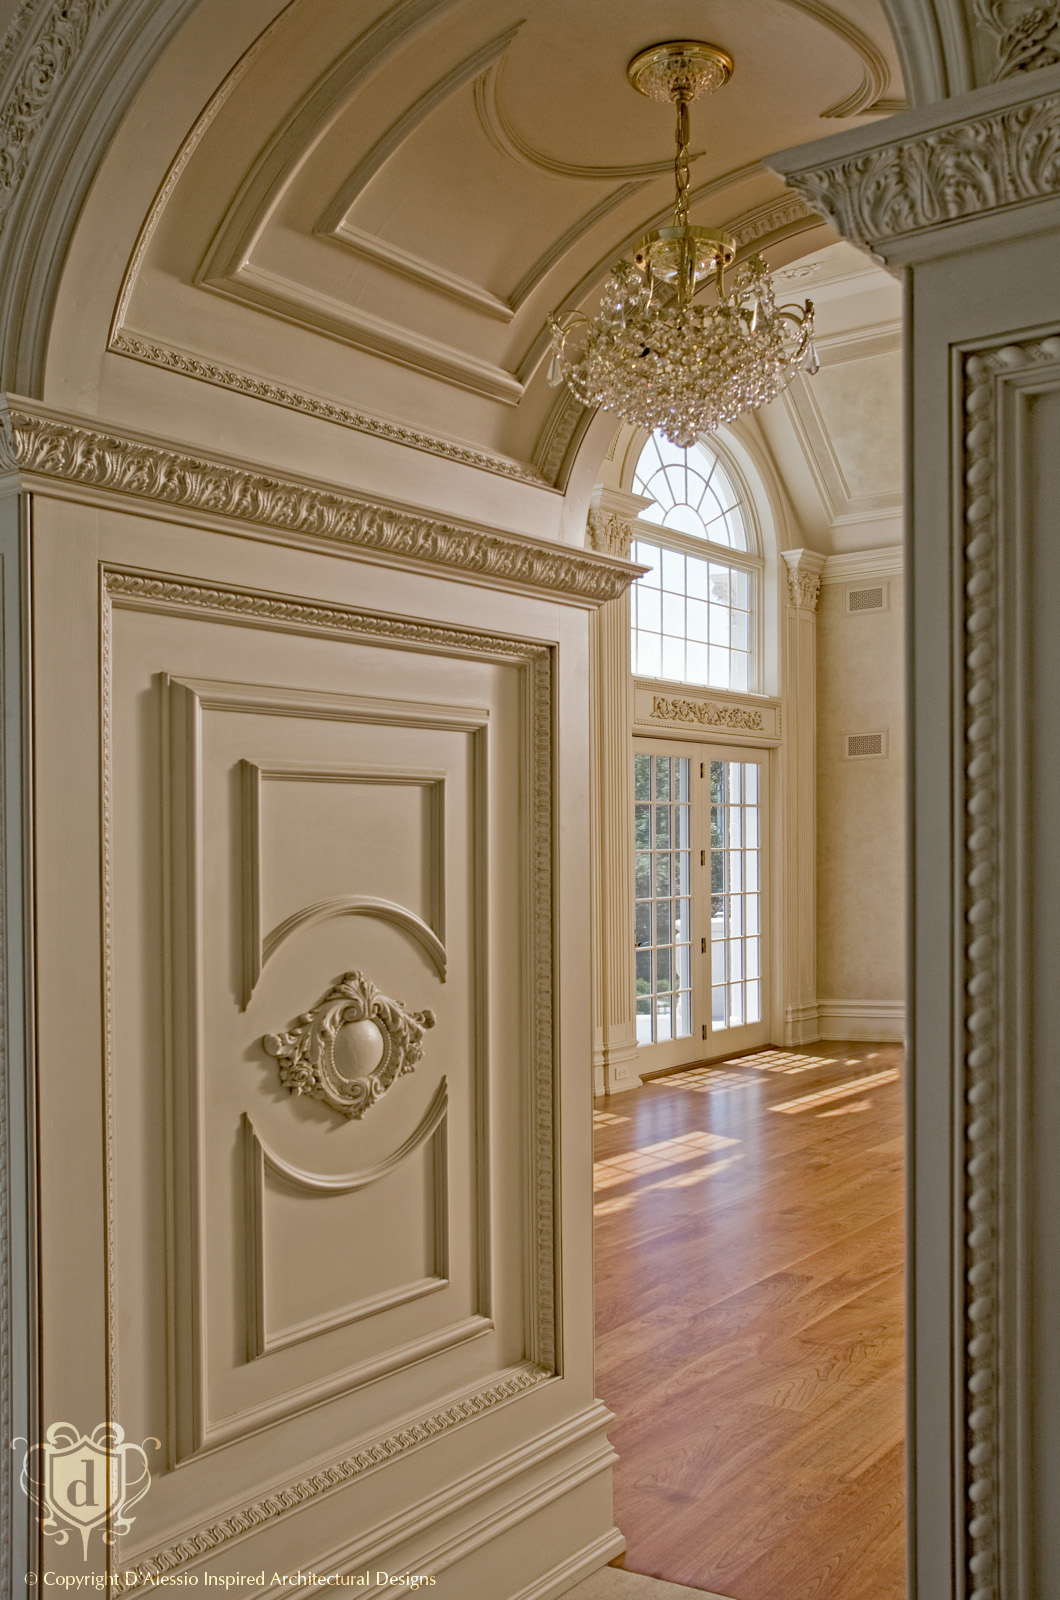 D 39 alessio custom architectural millwork design services for Decorative archway mouldings